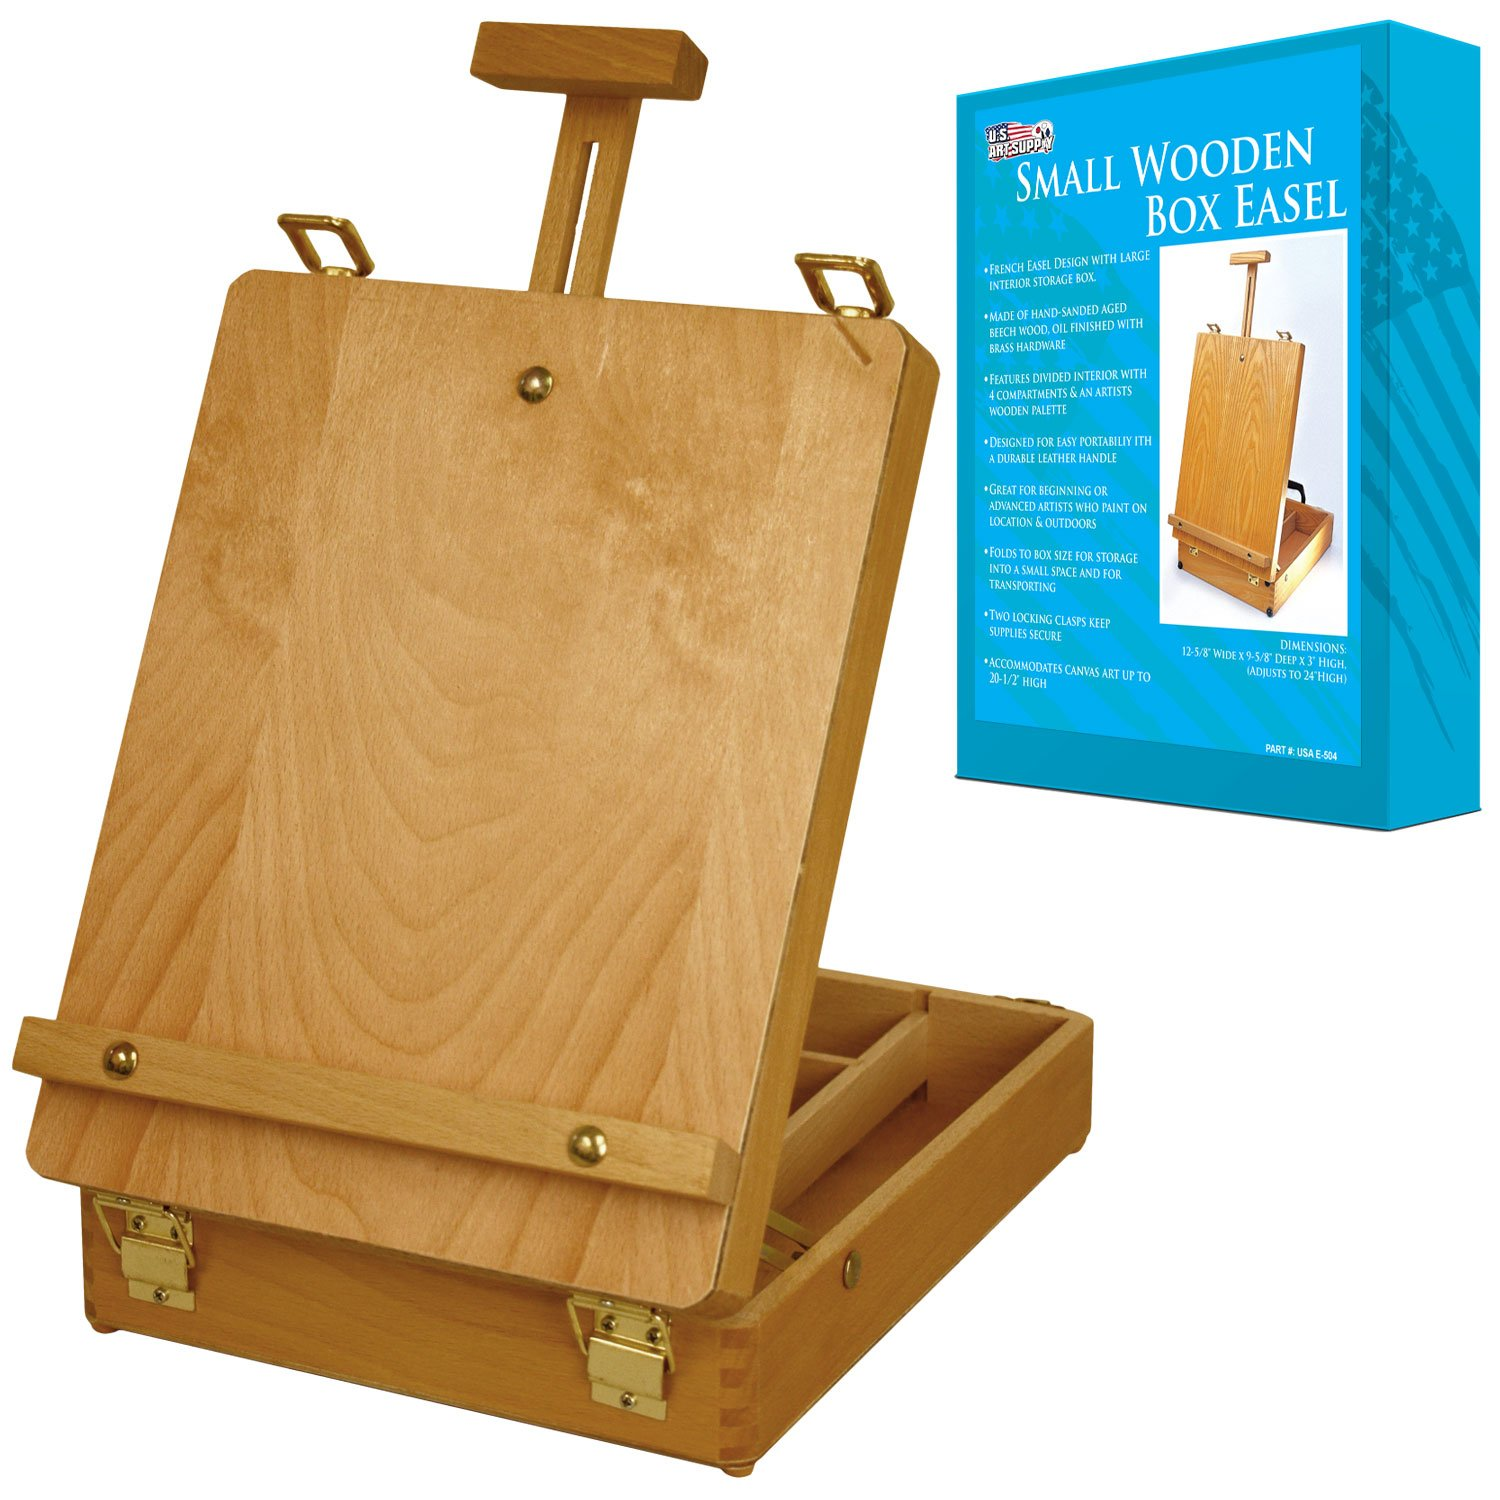 U.S. Art Supply Newport Small Adjustable Wood Table Sketchbox Easel, Premium Beechwood - Portable Wooden Artist Desktop Storage Case - Store Art Paint, Markers, Sketch Pad - Student Drawing, Painting by US Art Supply